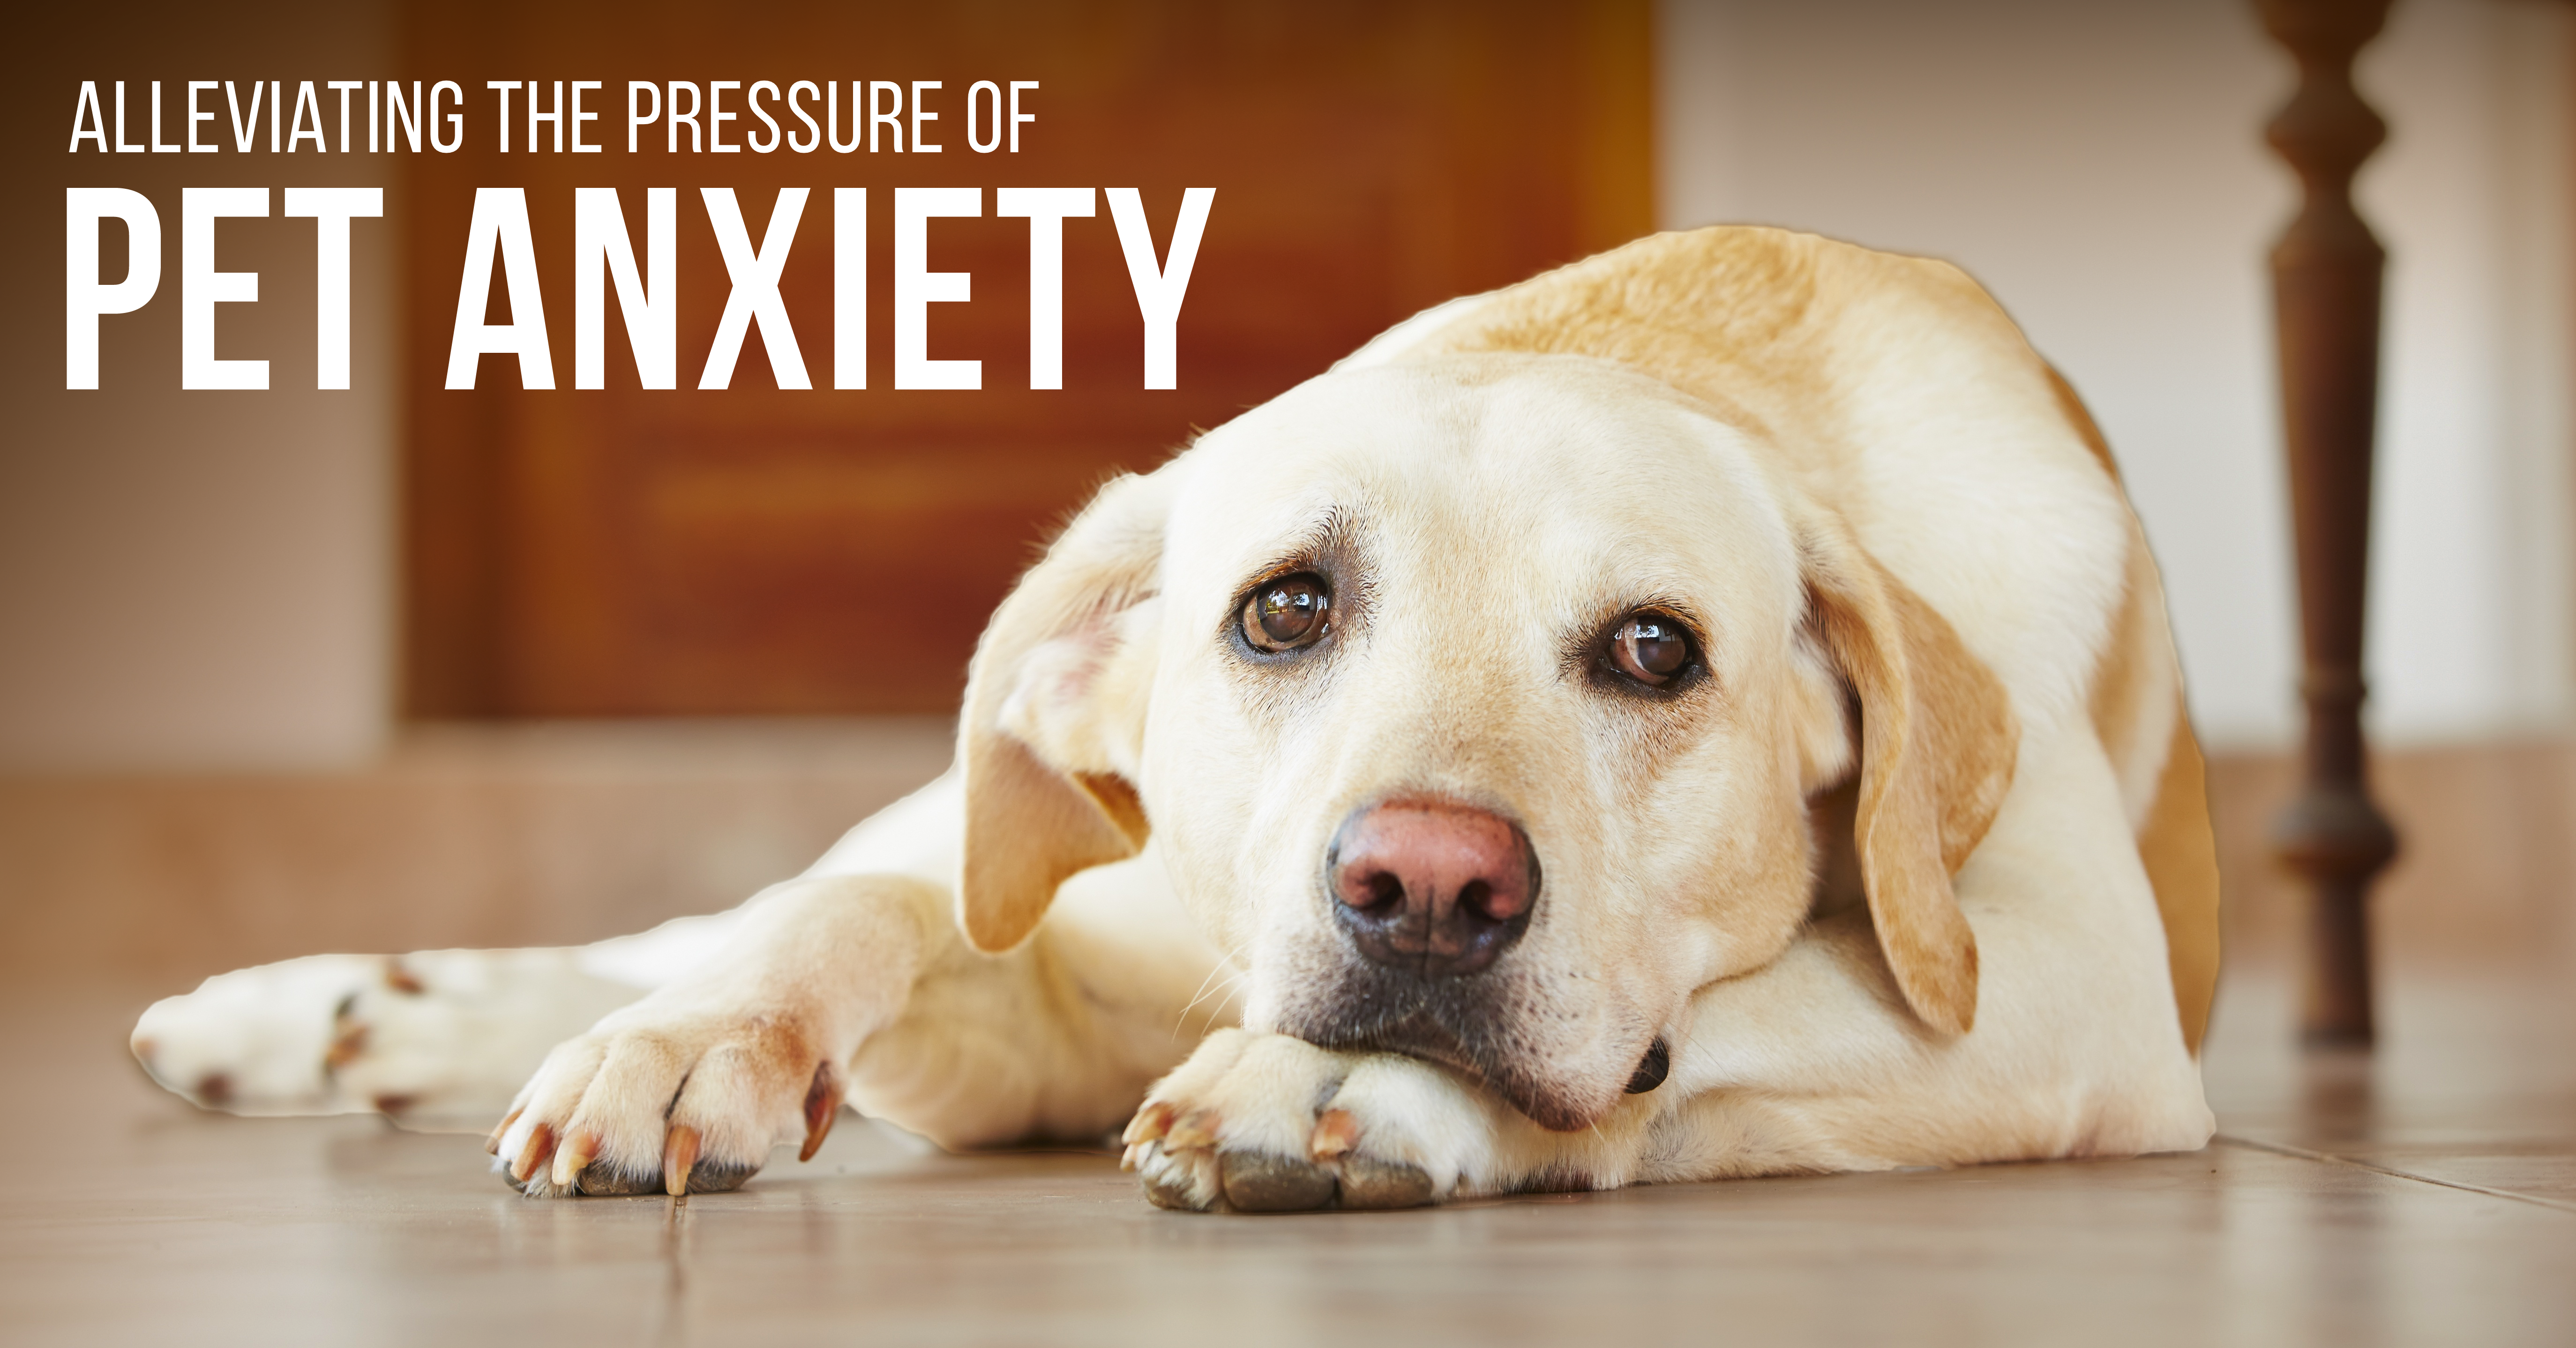 Alleviating the Pressure of Pet Anxiety